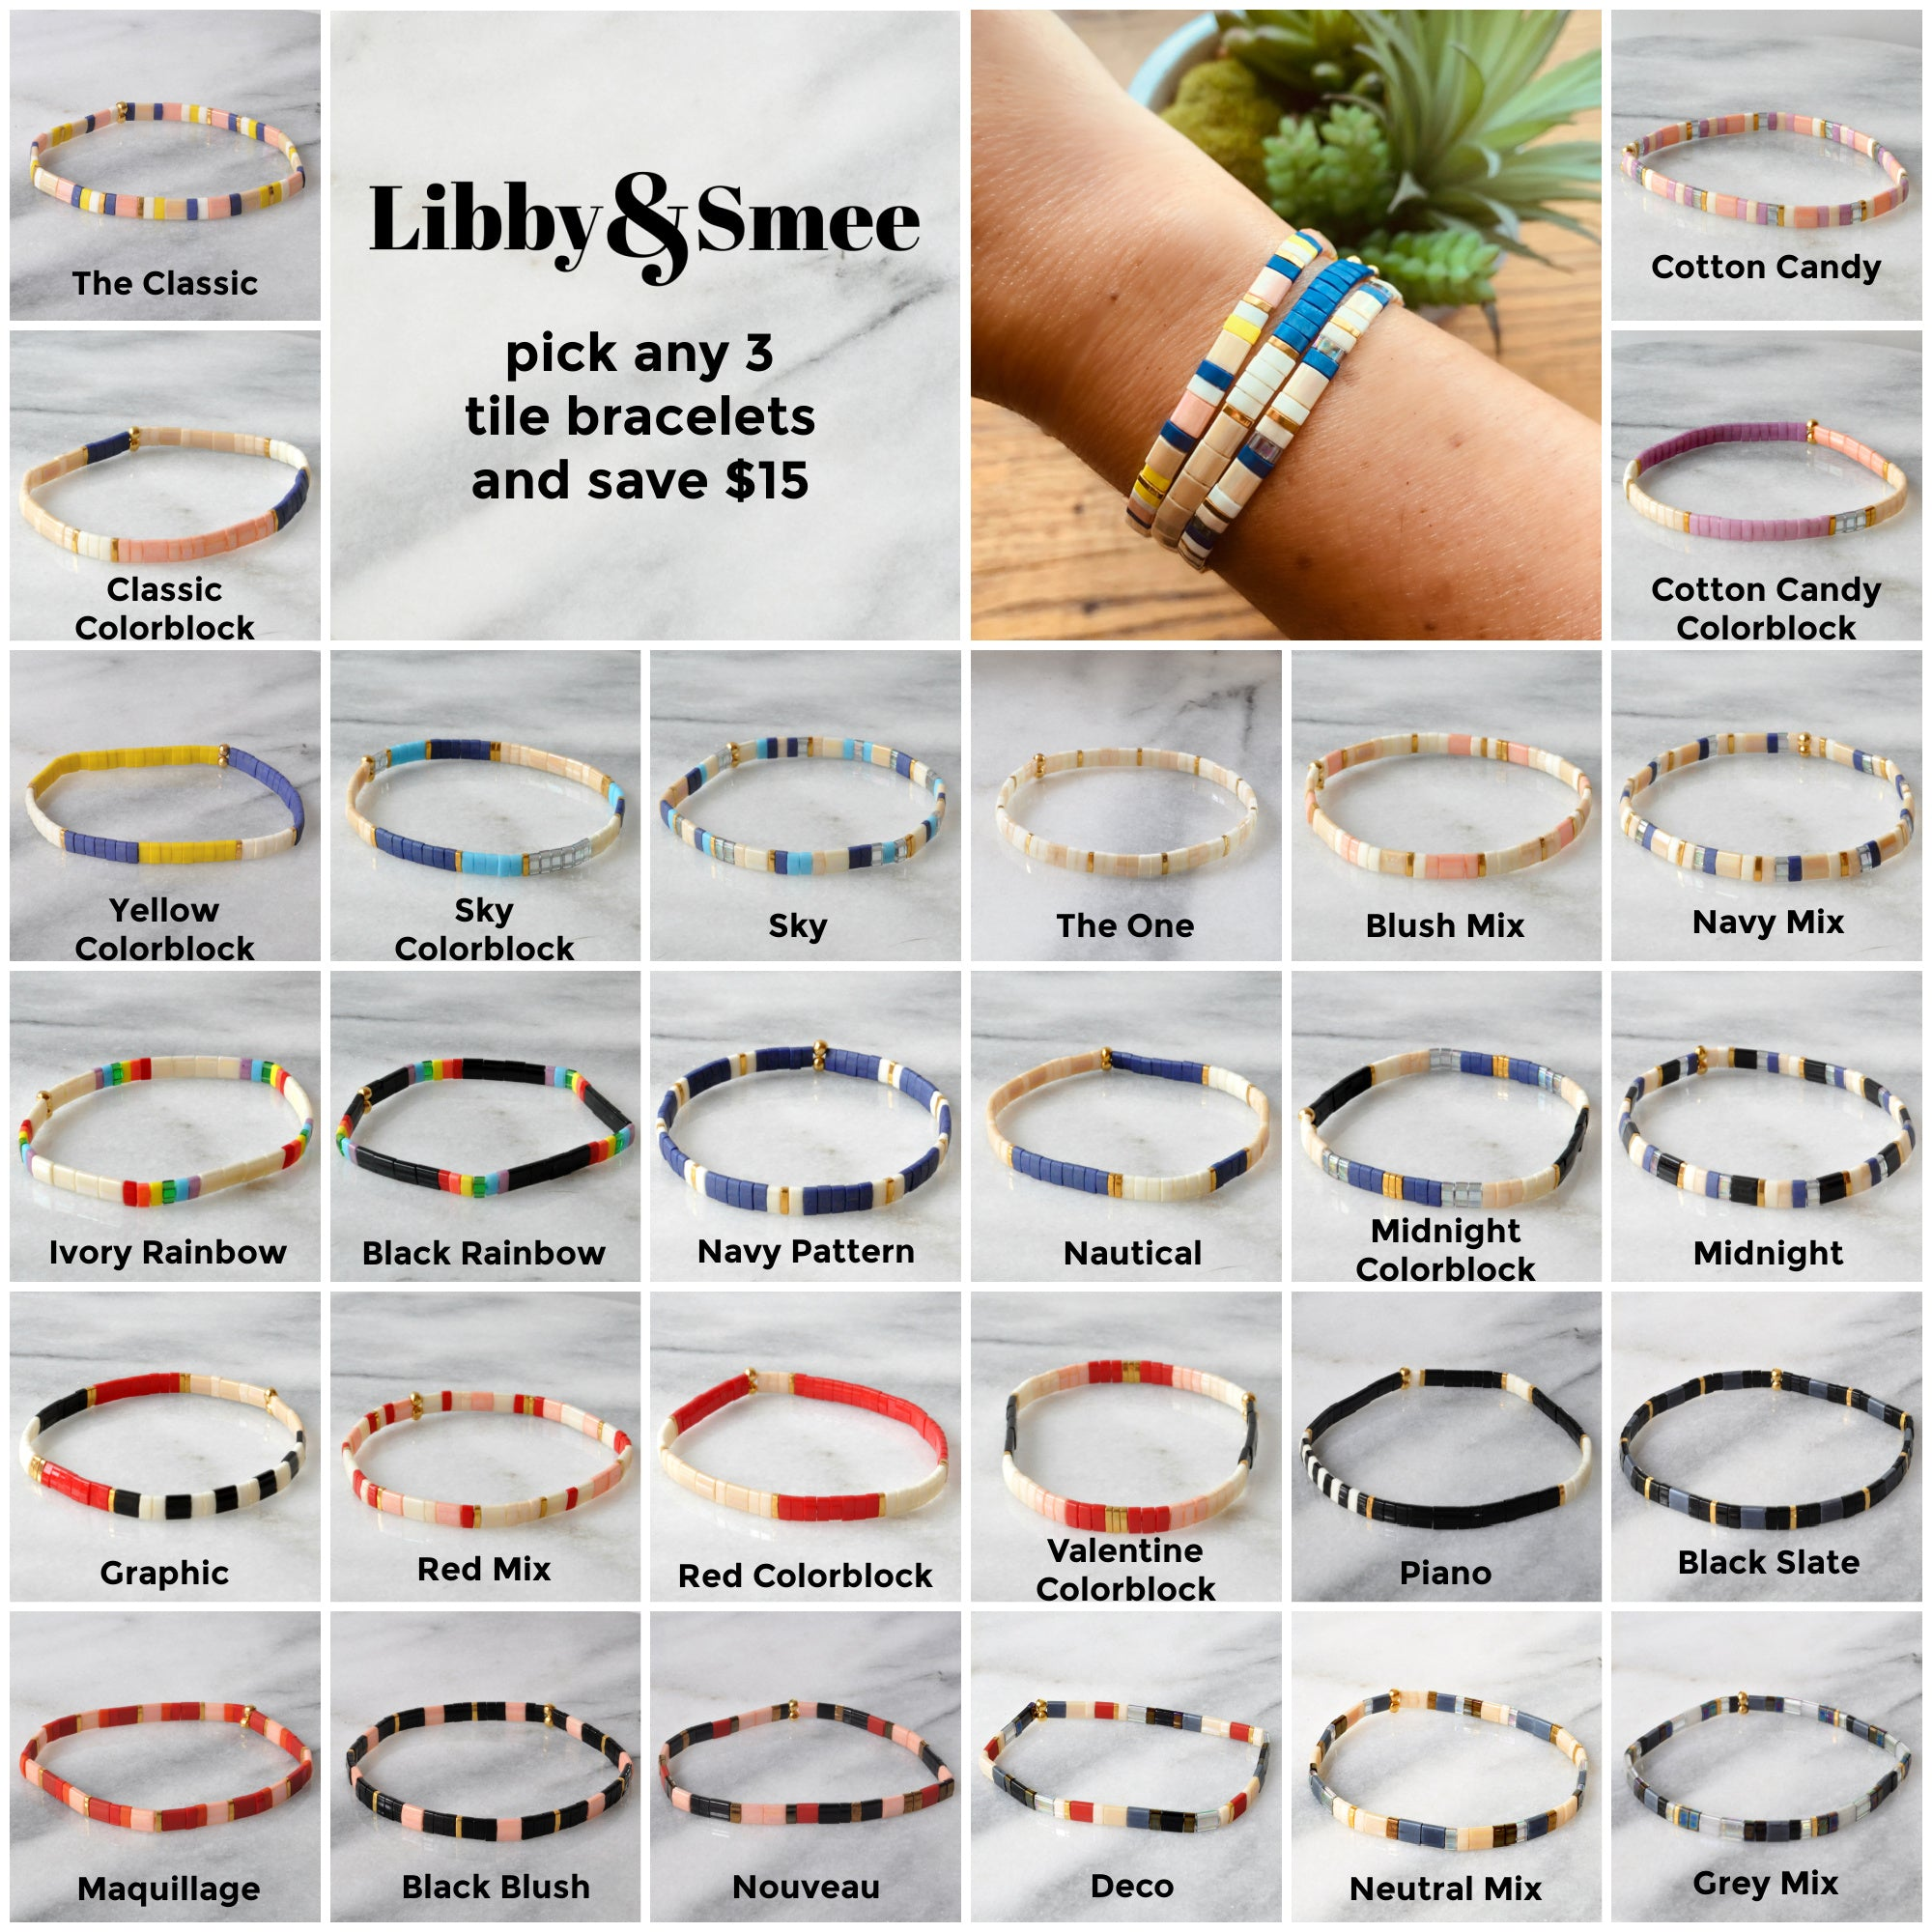 Libby & Smee stretch tile bracelet sets